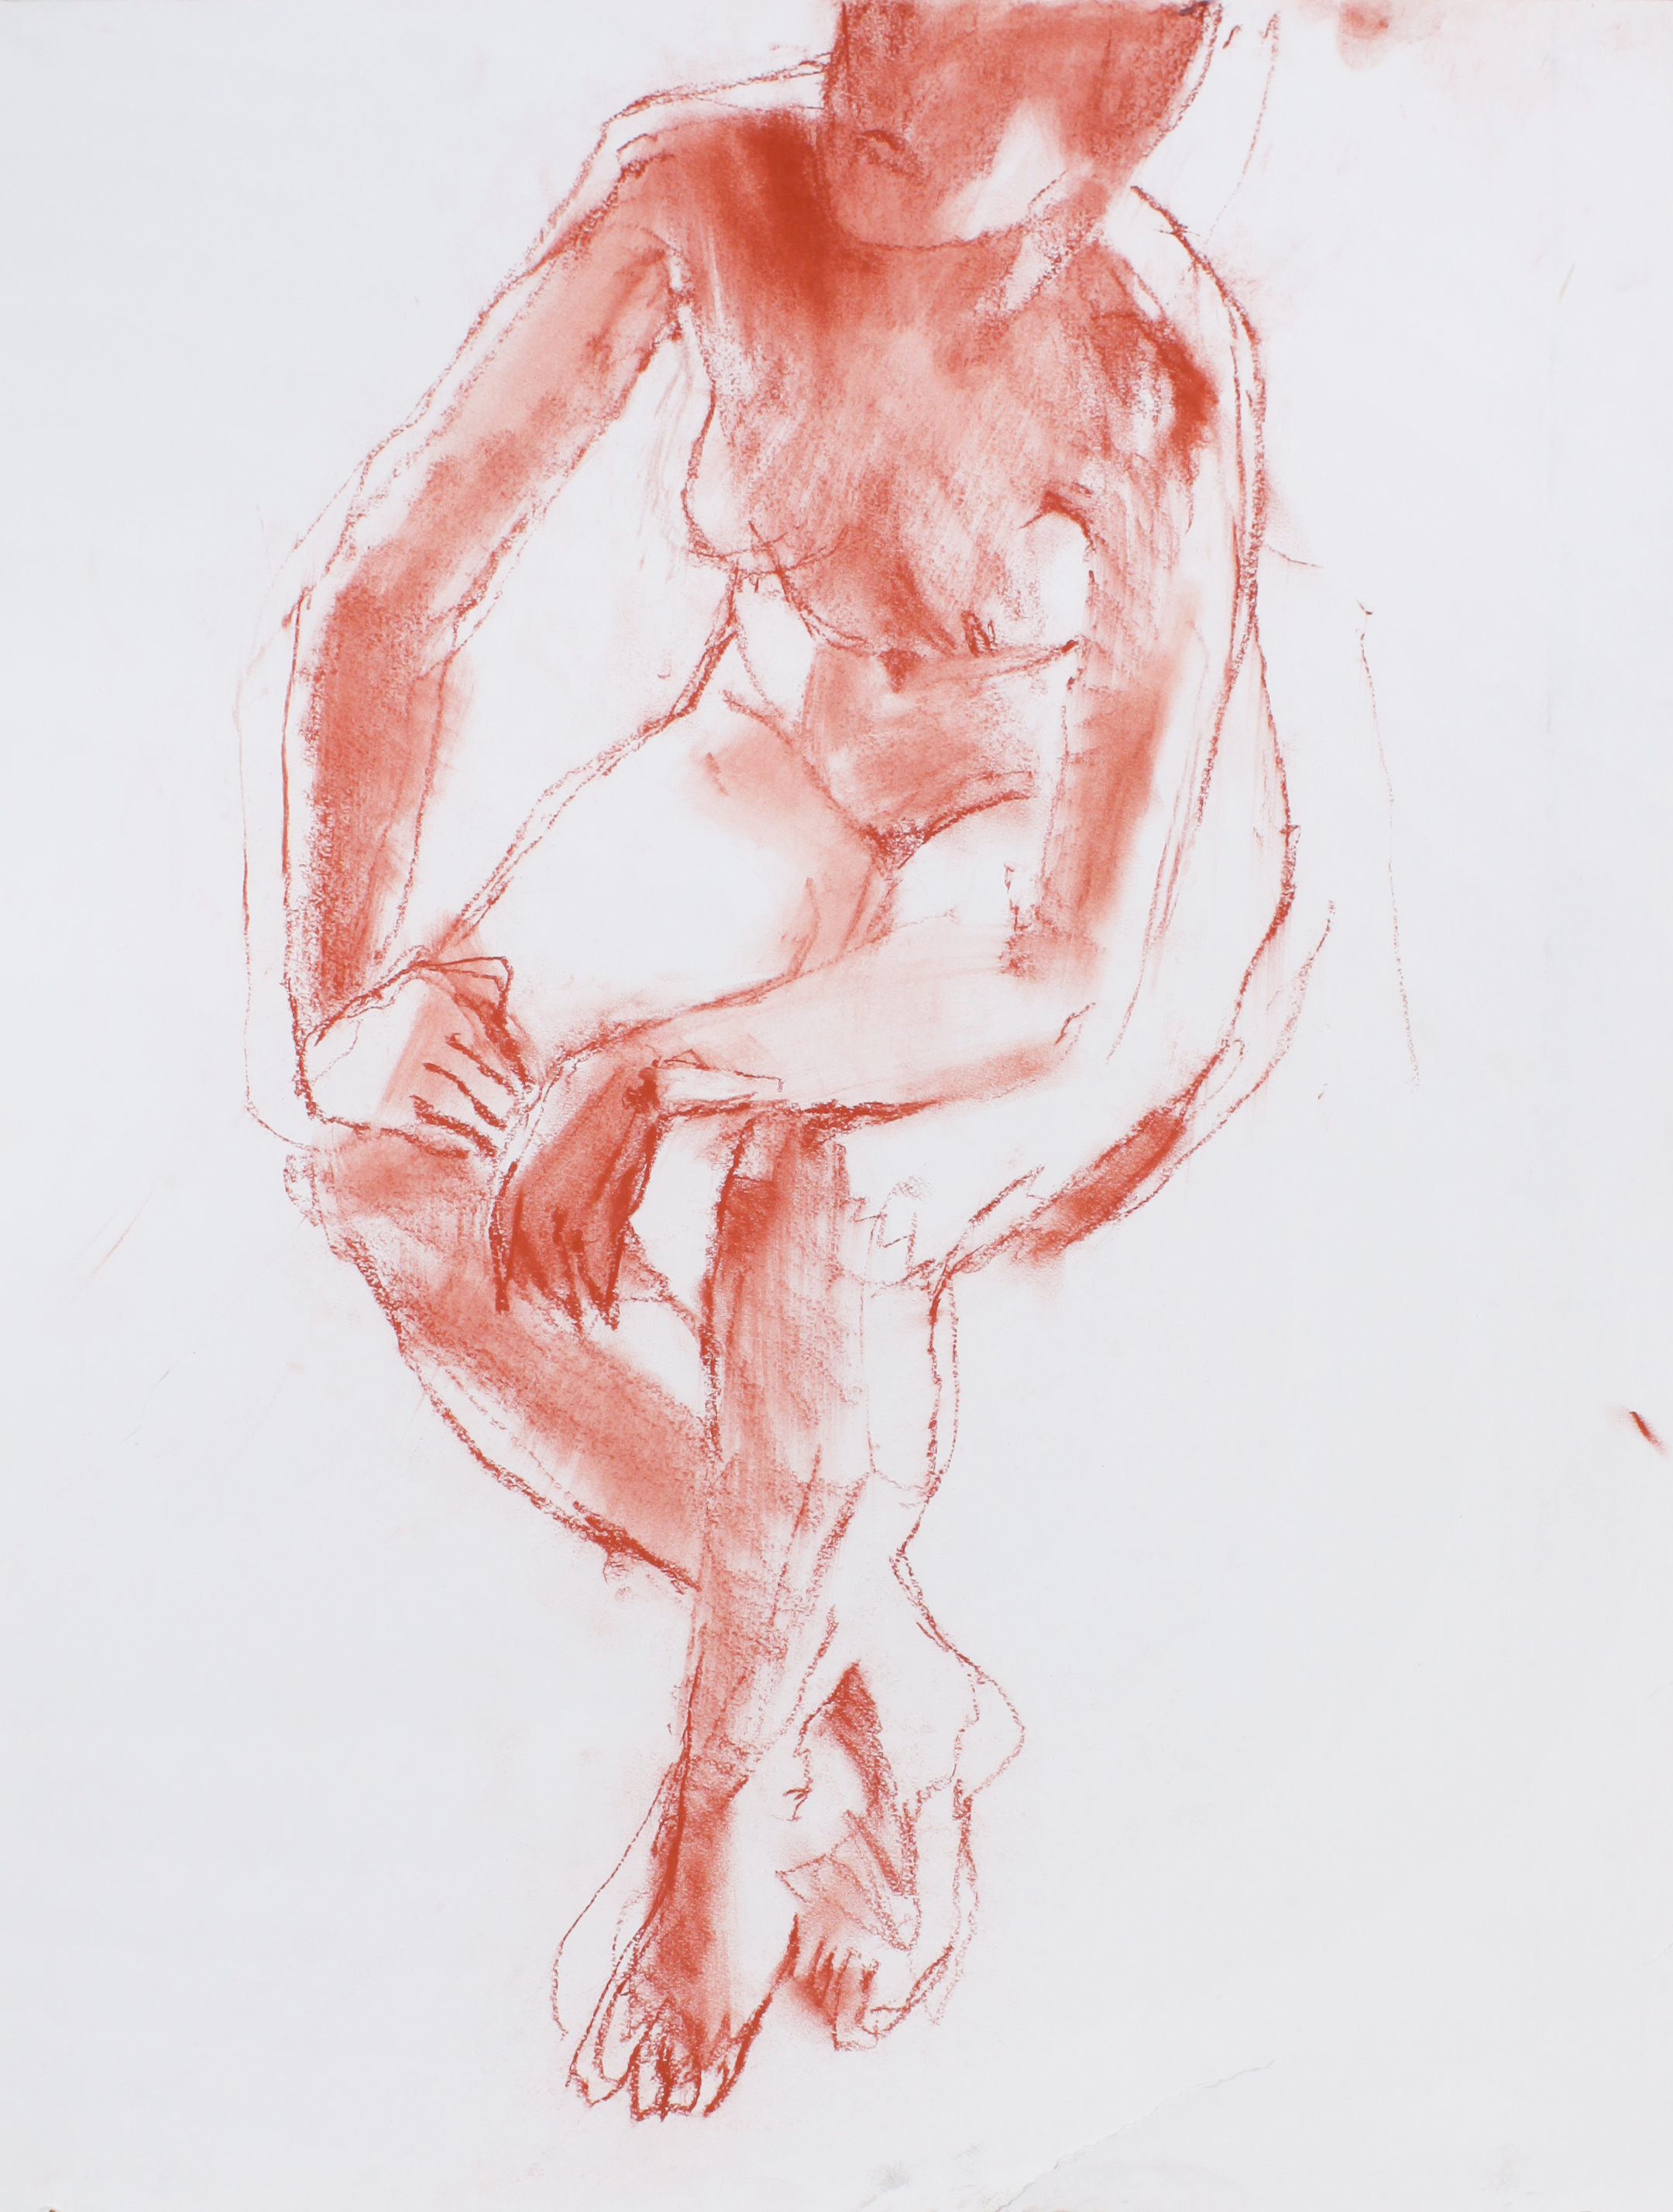 1990s_Seated_Nude_with_Legs_Crossed_Near_Ankles_red_conte_on_paper_26x20in_WPF490.jpg